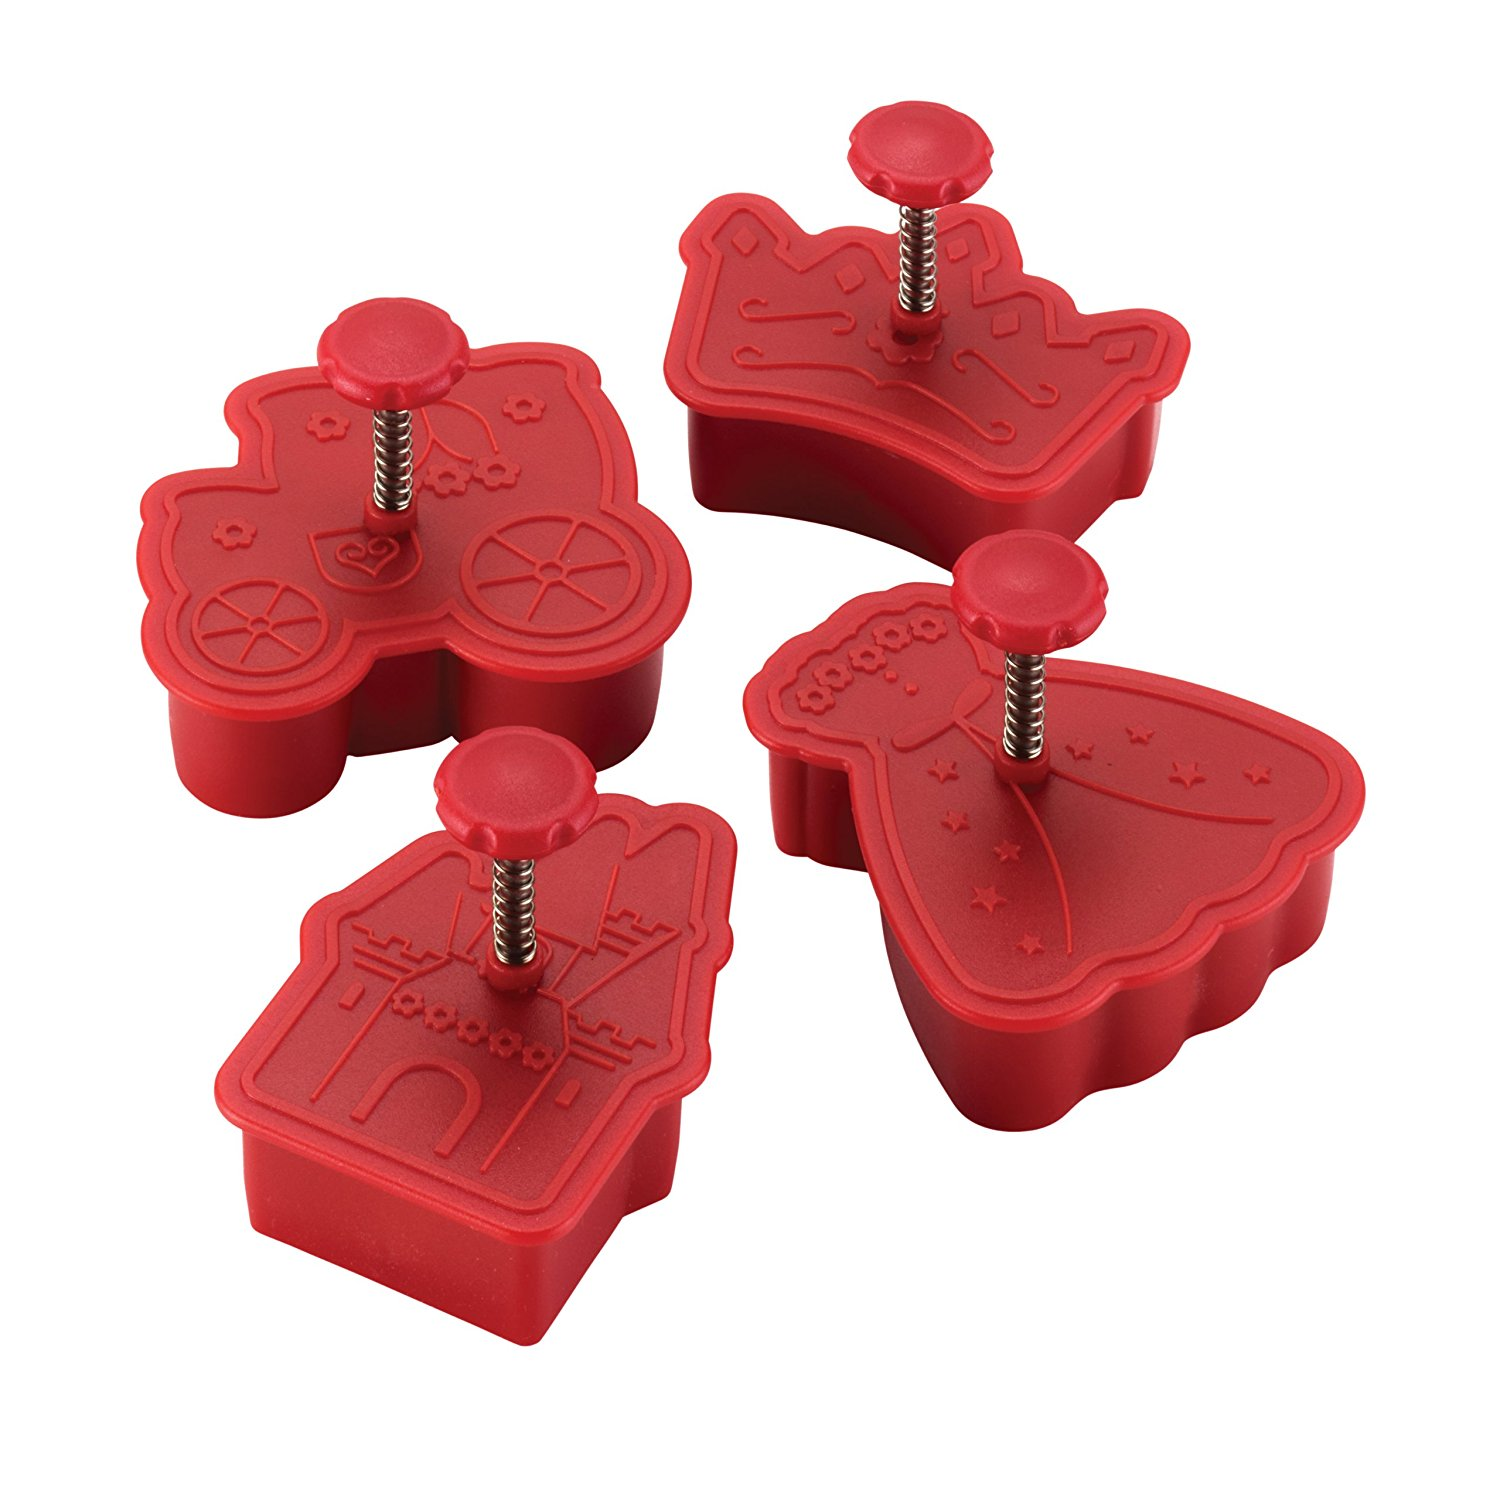 Cake Boss Decorating Tools 4-Piece Princess Fondant Press Set, Red